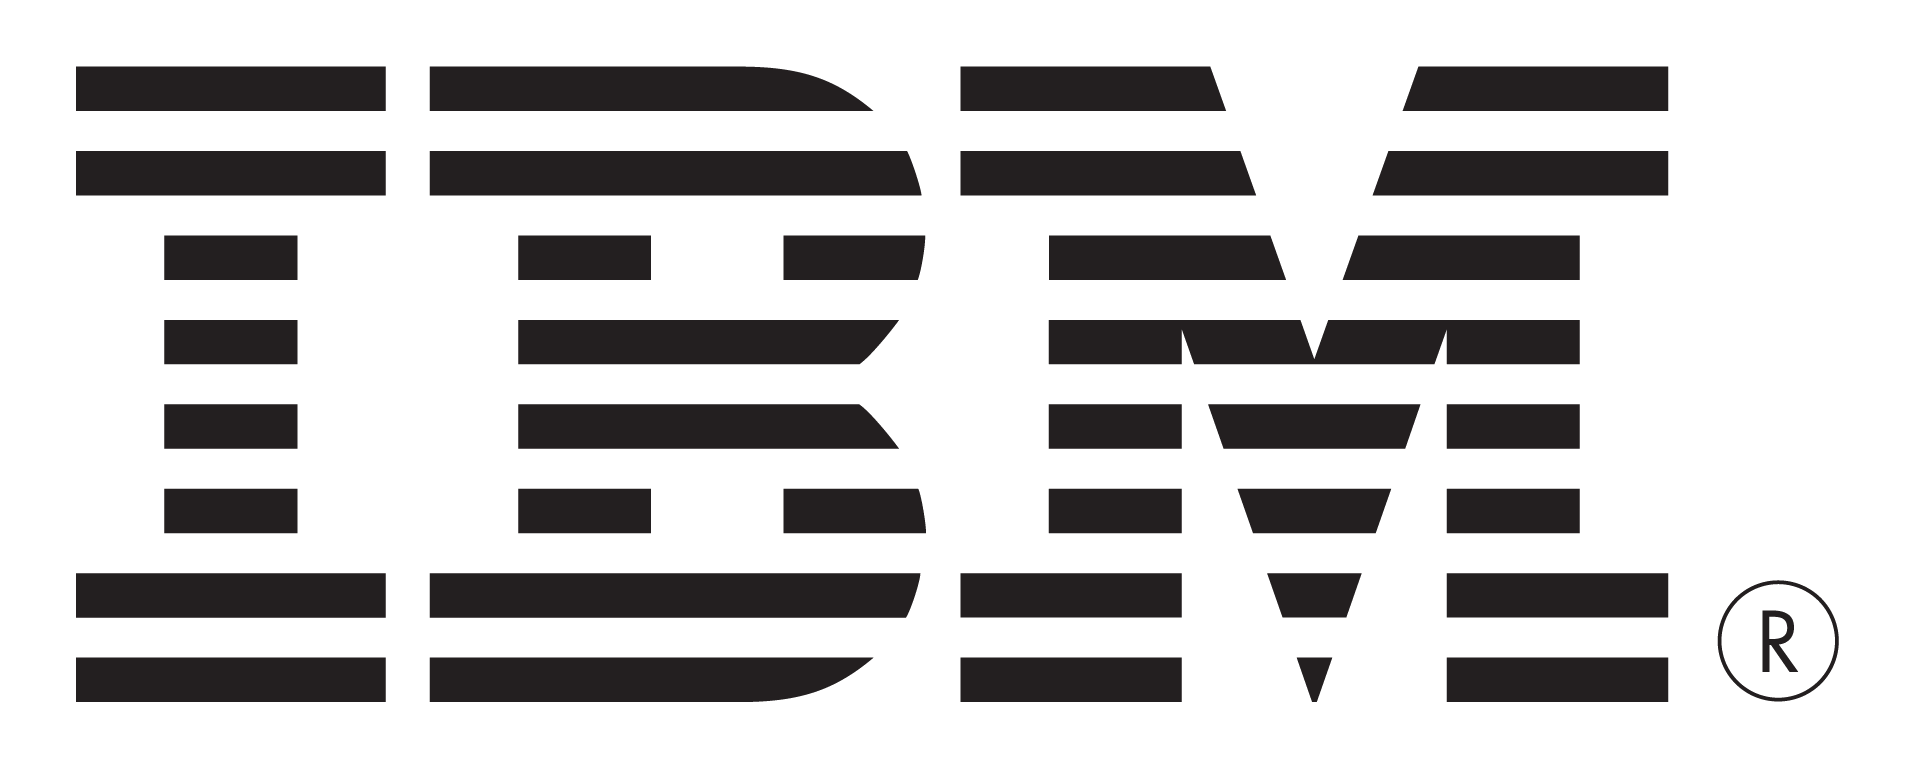 PNGPIX-COM-IBM-Logo-Black-PNG-Transparent